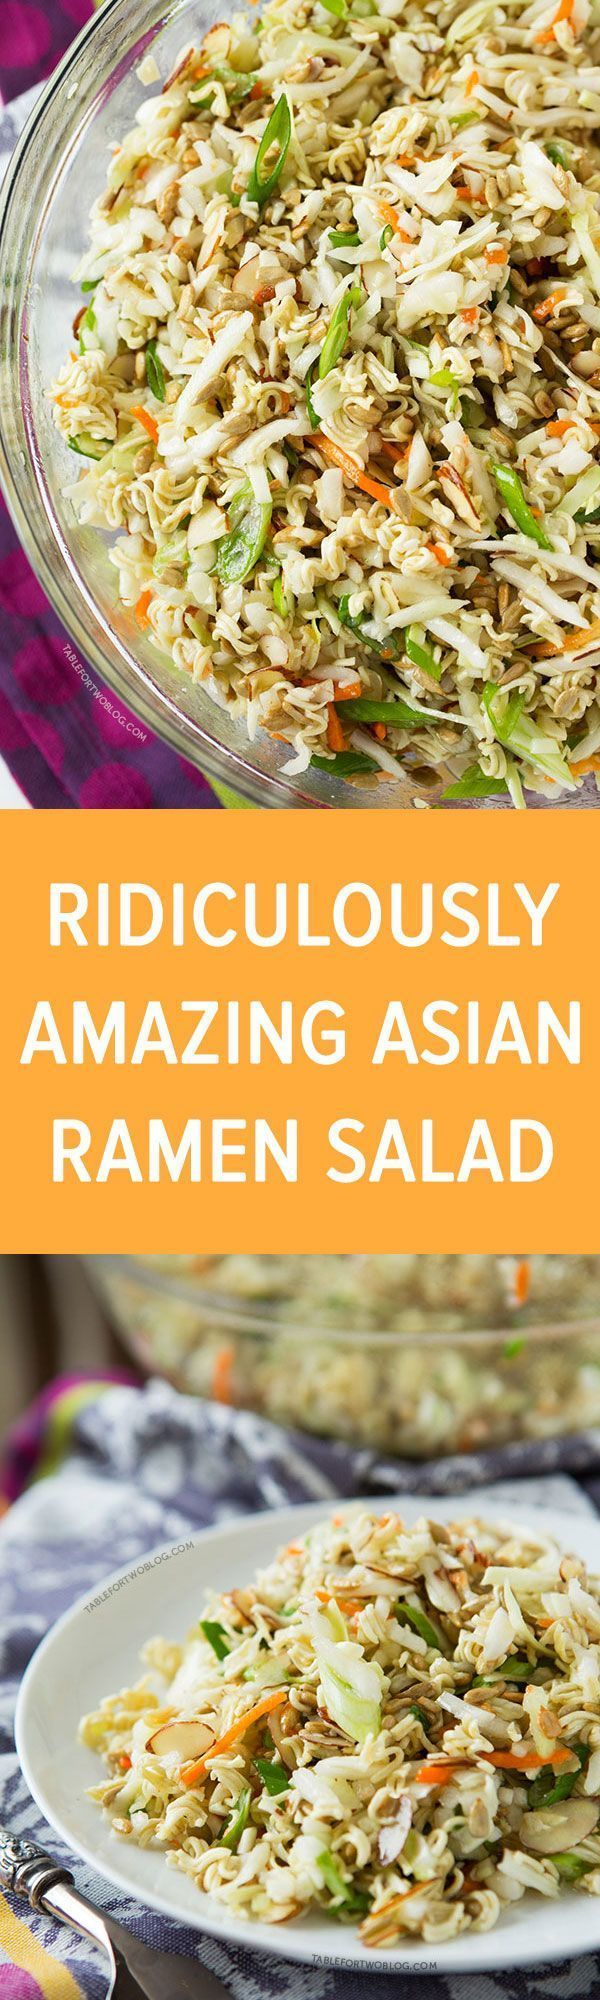 This Ridiculously Amazing Asian Ramen Salad Will Have You And Your Guests Going Back For Thirds Potluck DishesPotluck